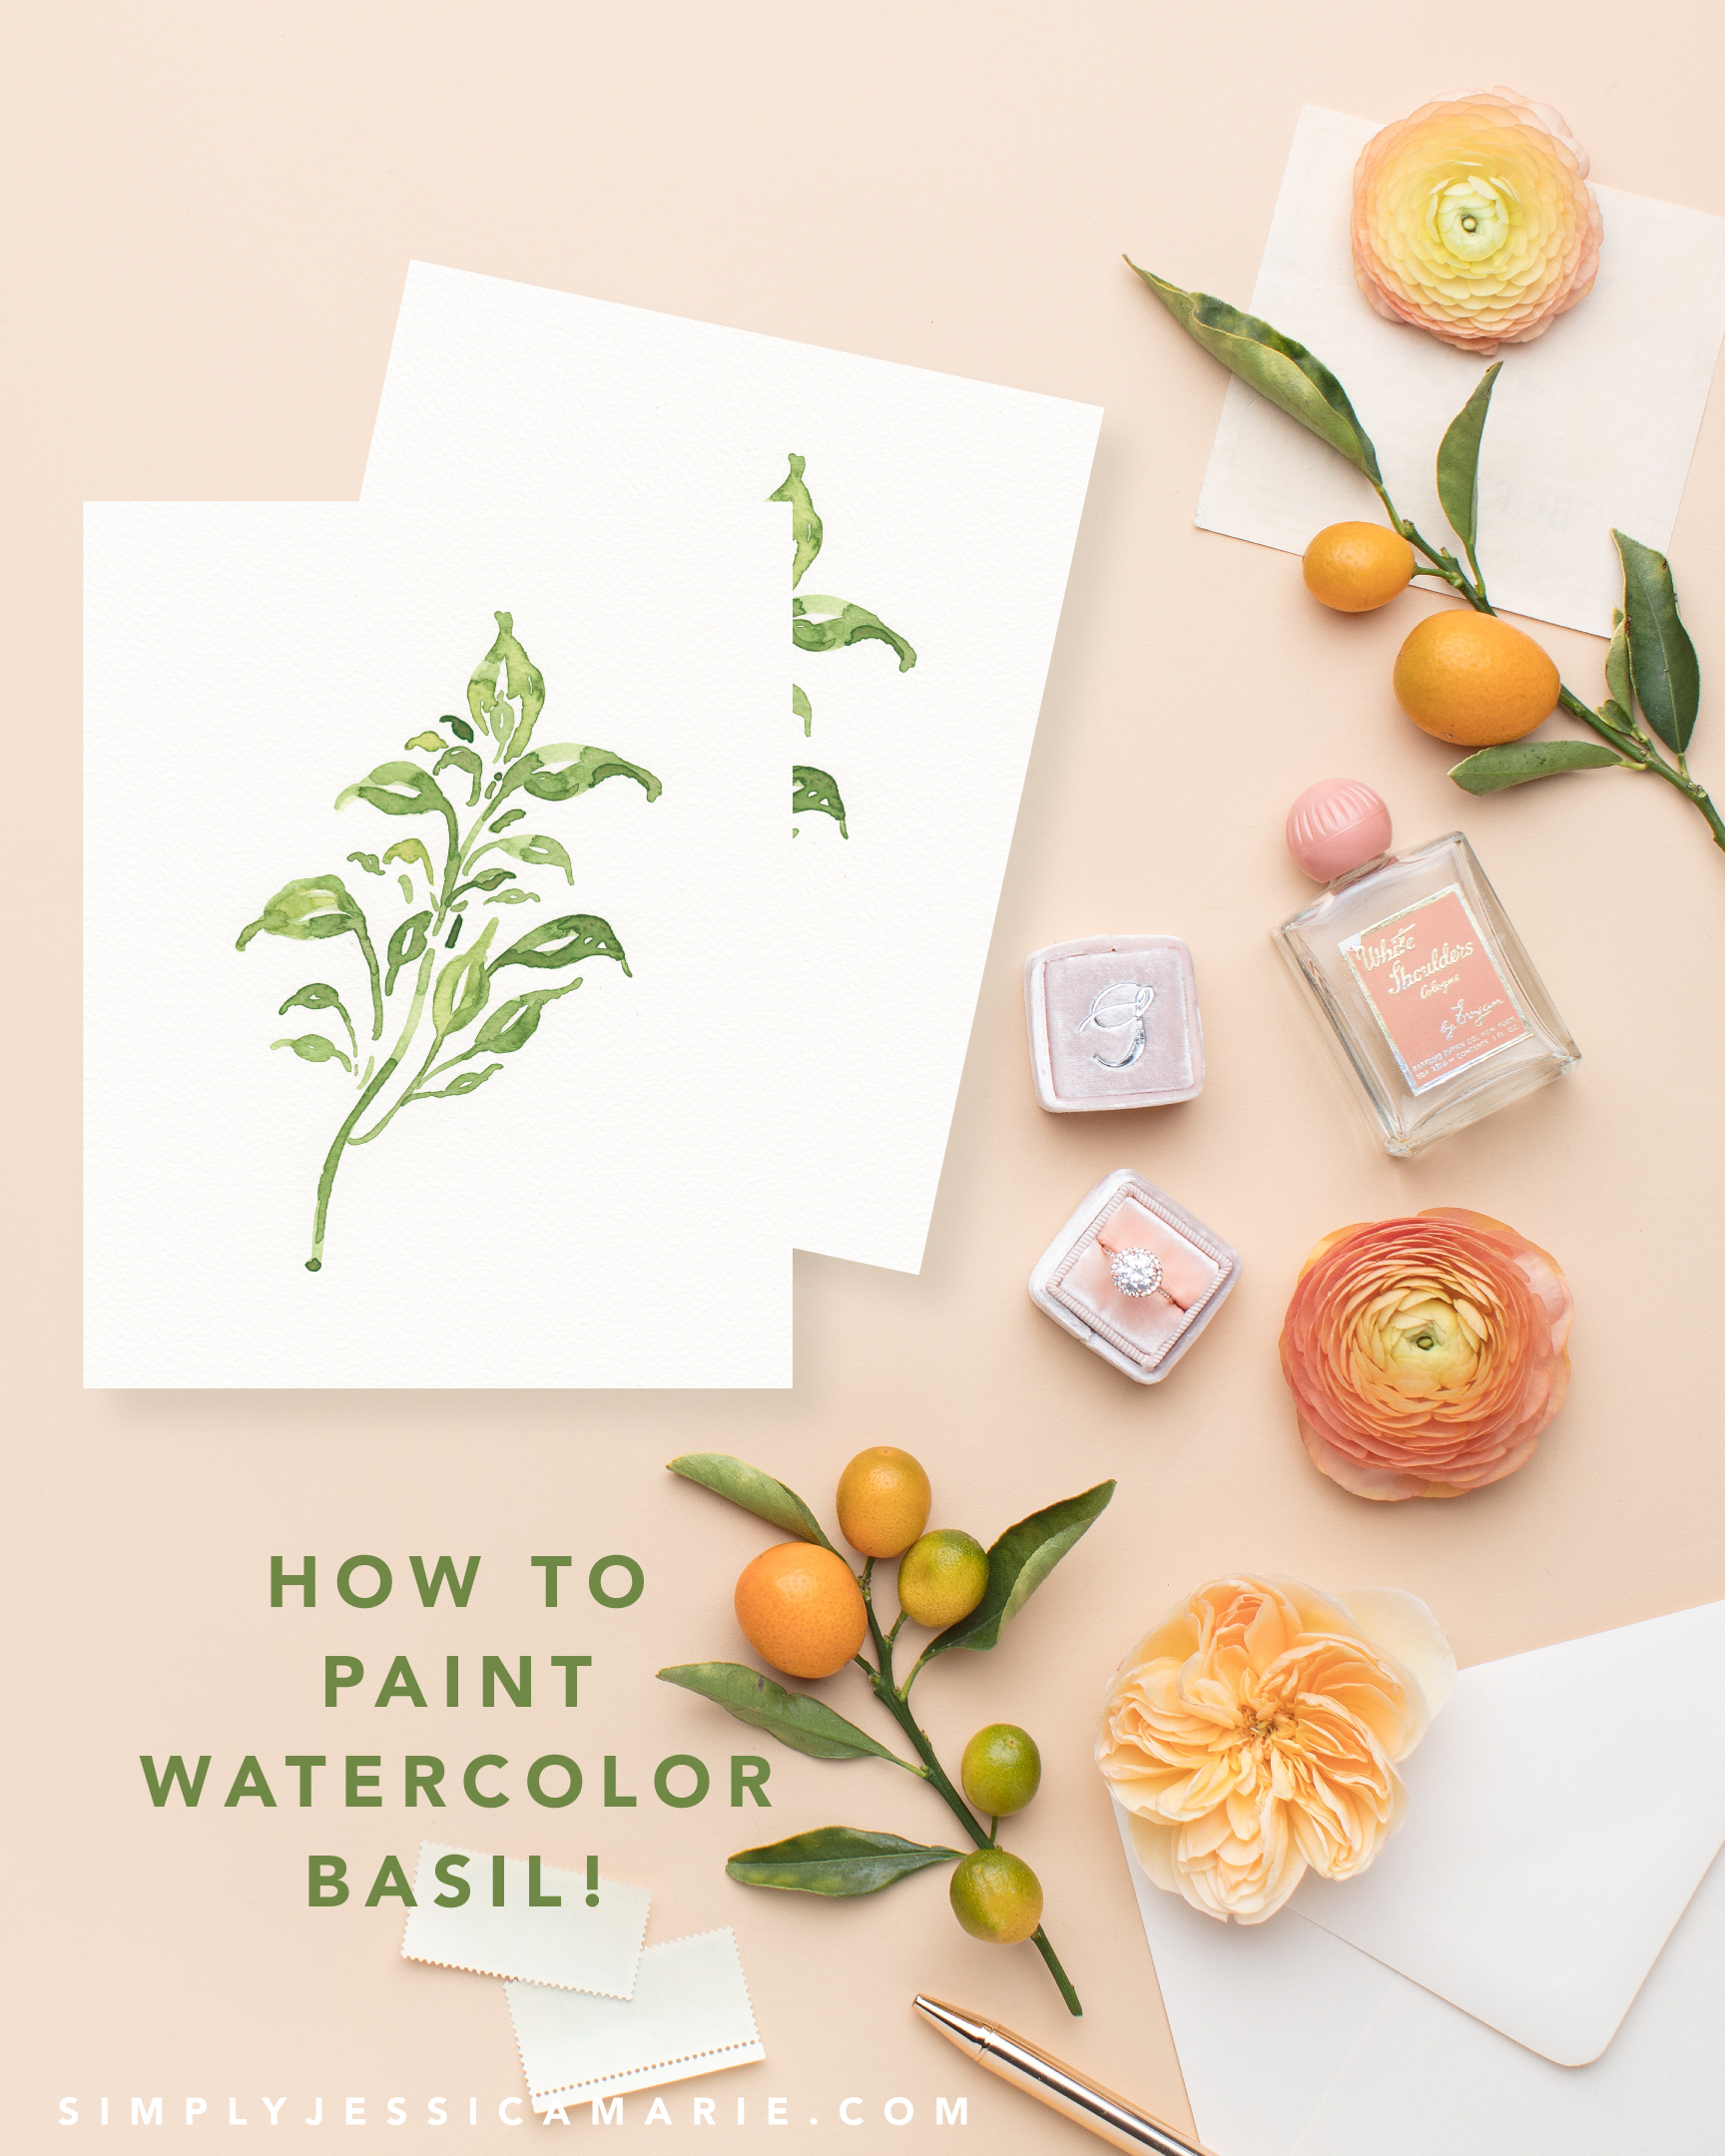 How to paint watercolor basil! Fun and free watercolor videos by Simply Jessica Marie! Learn to mix new colors each week and paint with that color!   SC Stockshop